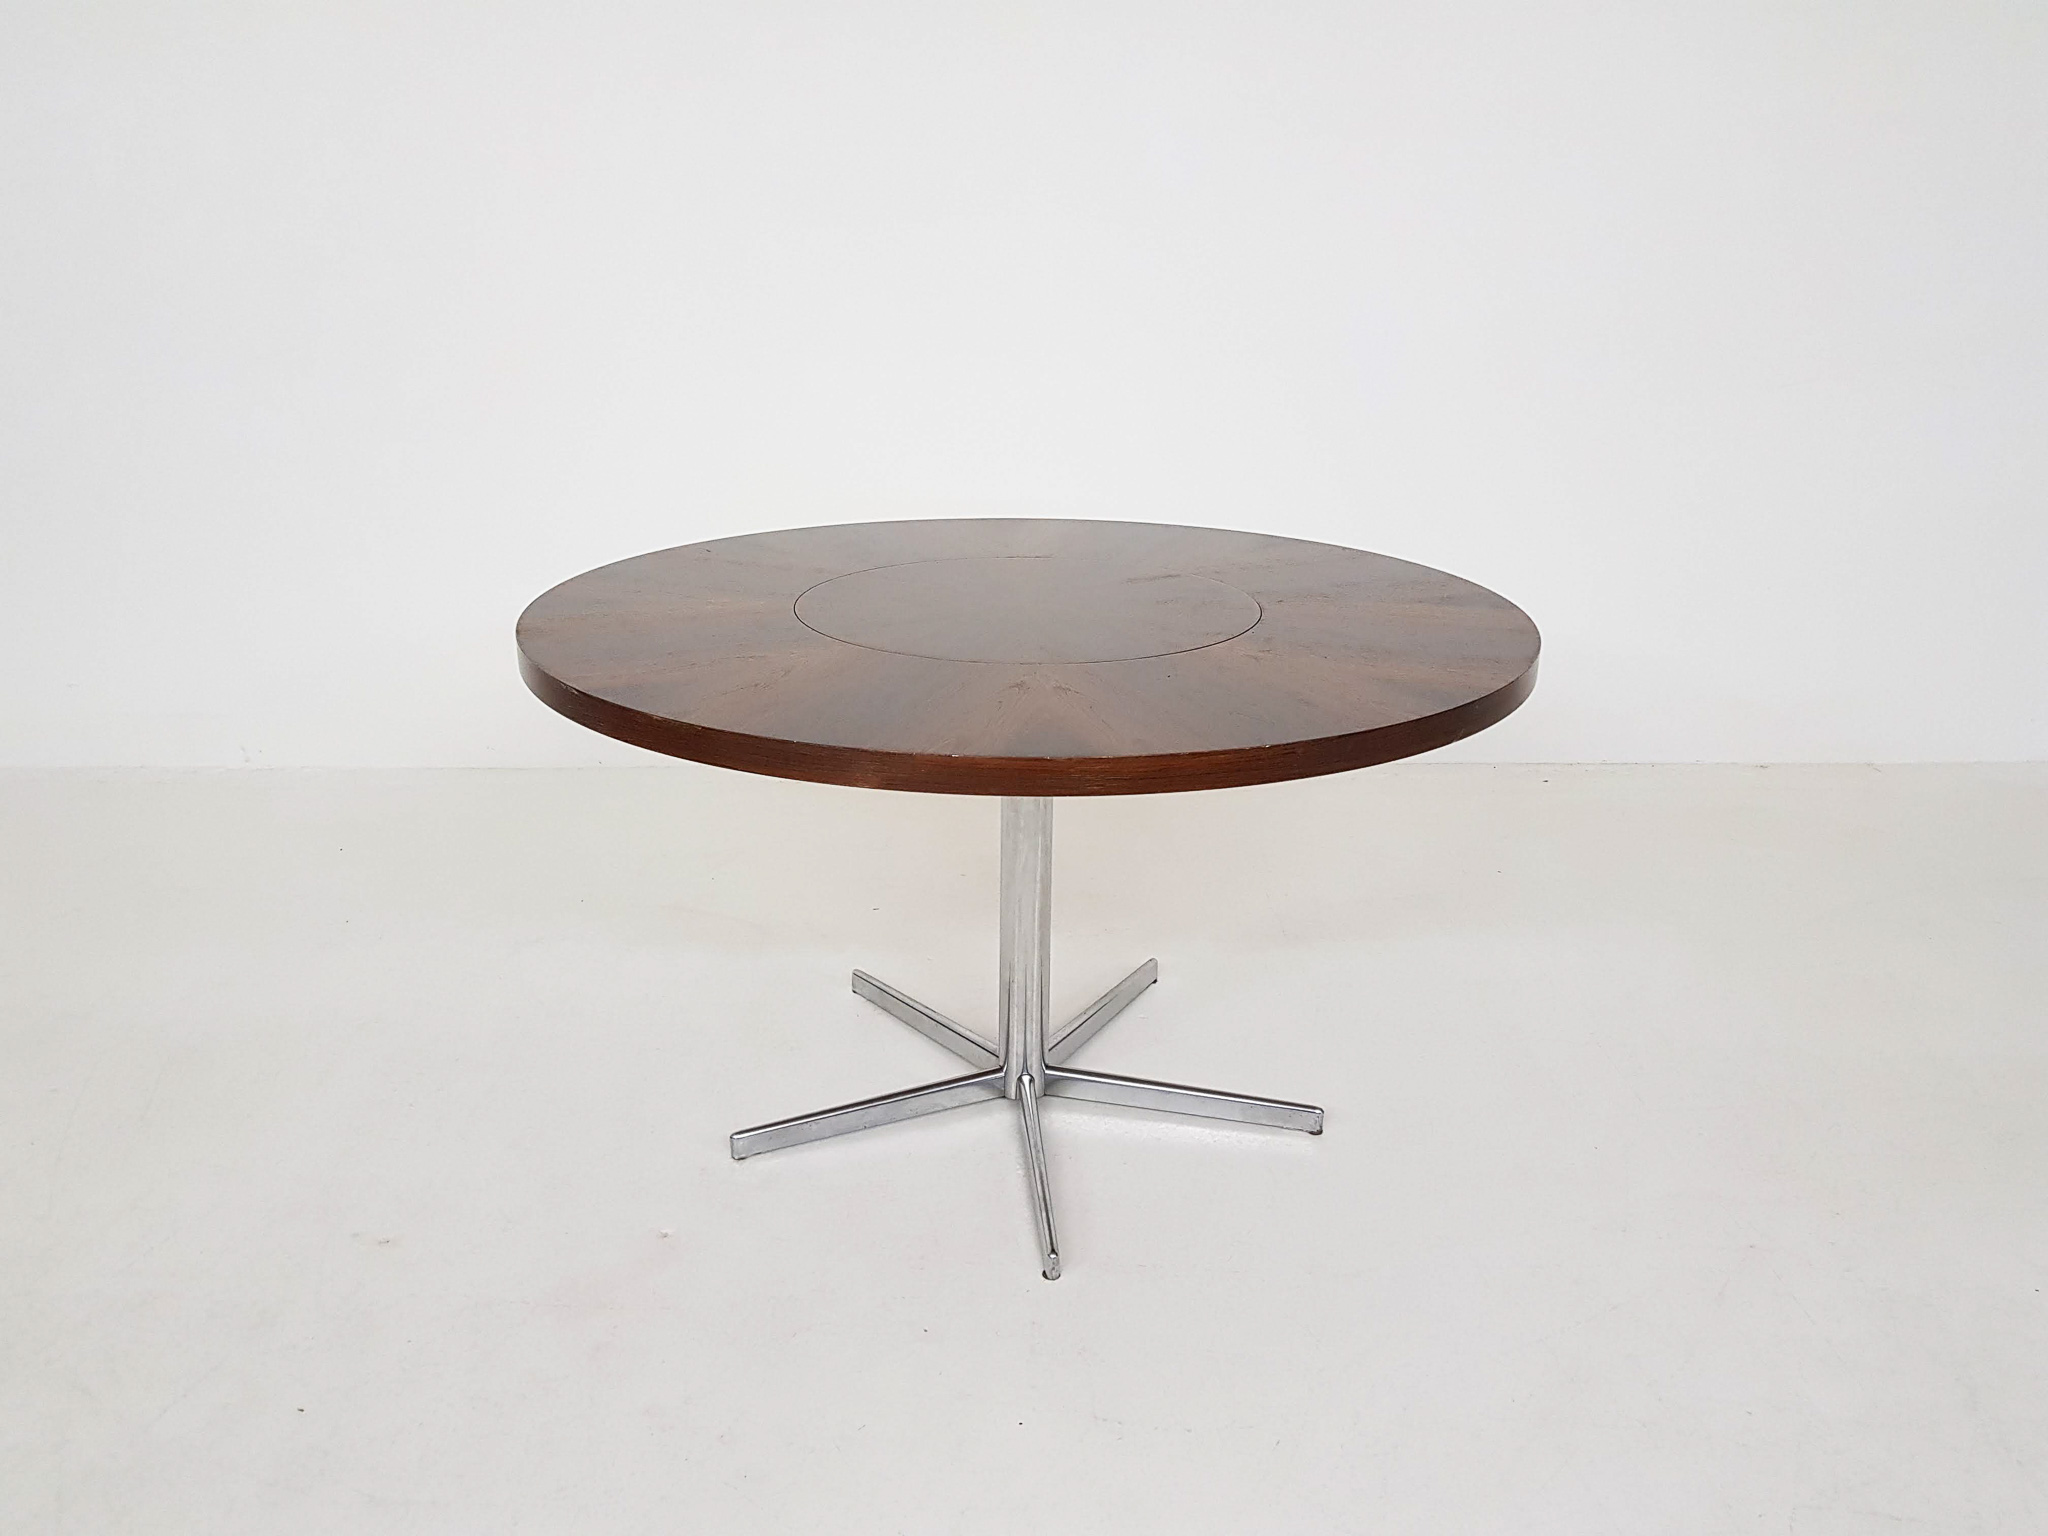 Round Rosewood Dining Table By Emü Germany 1960 S For Sale At Zo Goed Als Oud